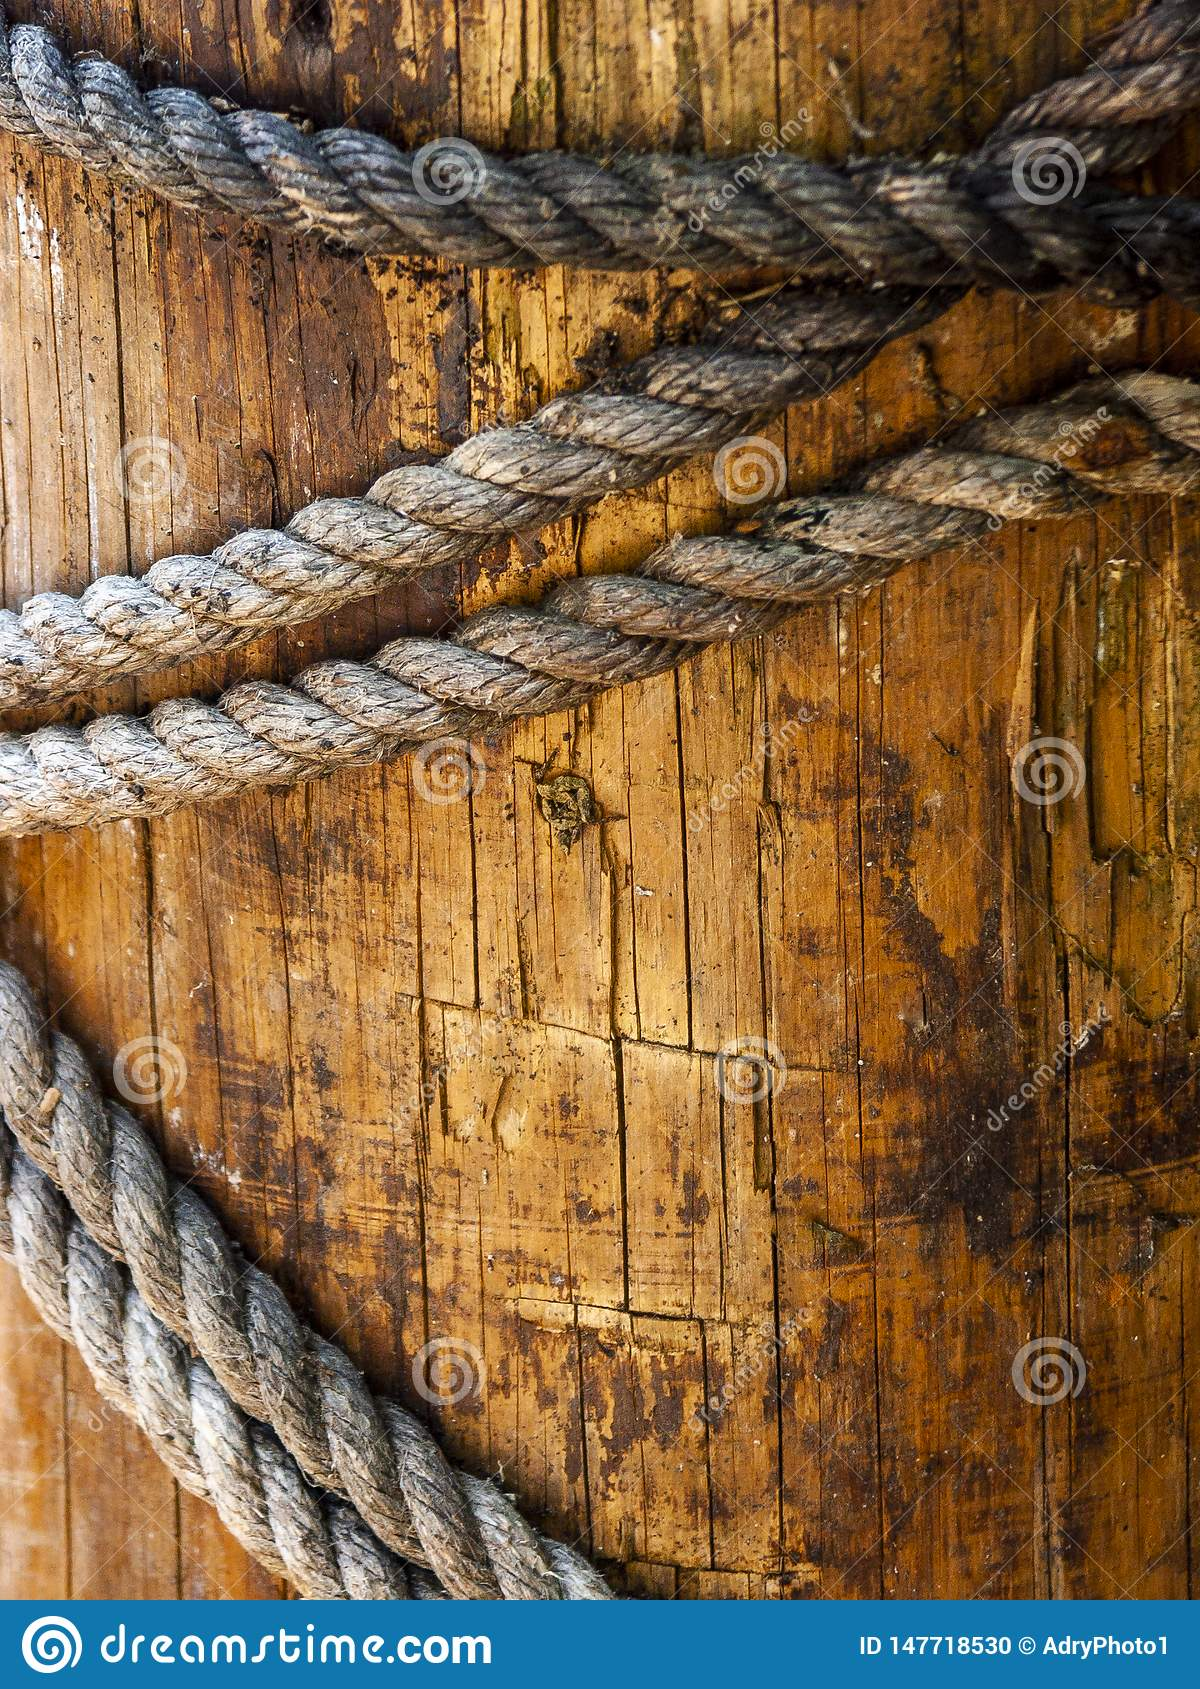 Dock in nautical pier wood with strings worn with time and natural elements